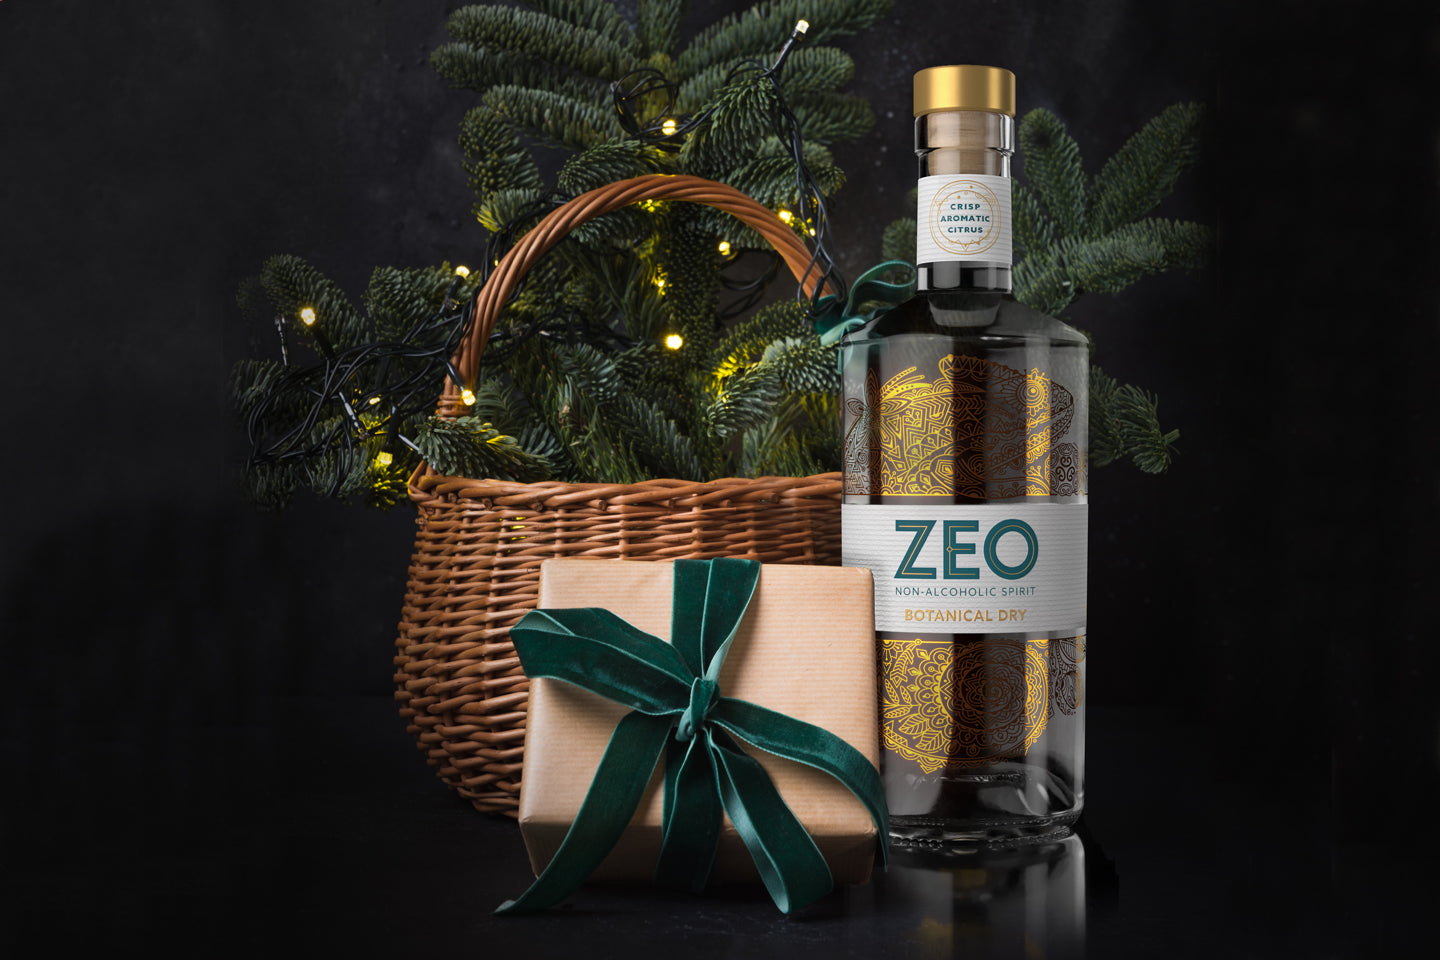 ZEO Botanical Dry next to an alcohol-free Christmas hamper